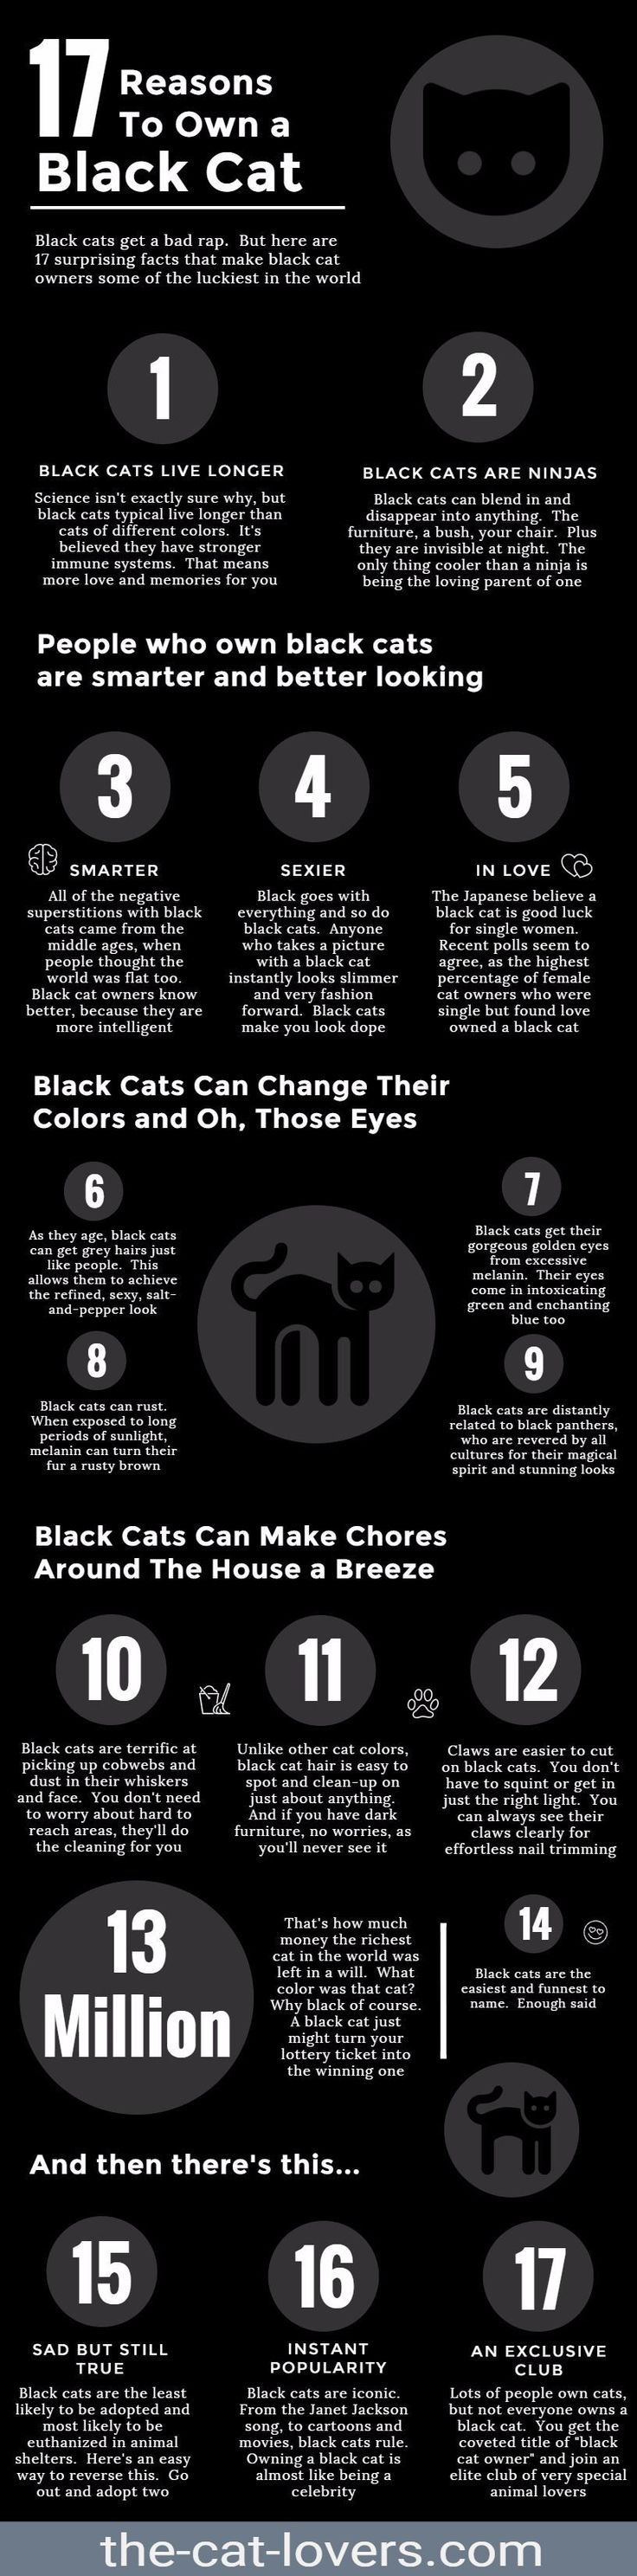 best meow images on pinterest kitty cats black cats and cat stuff